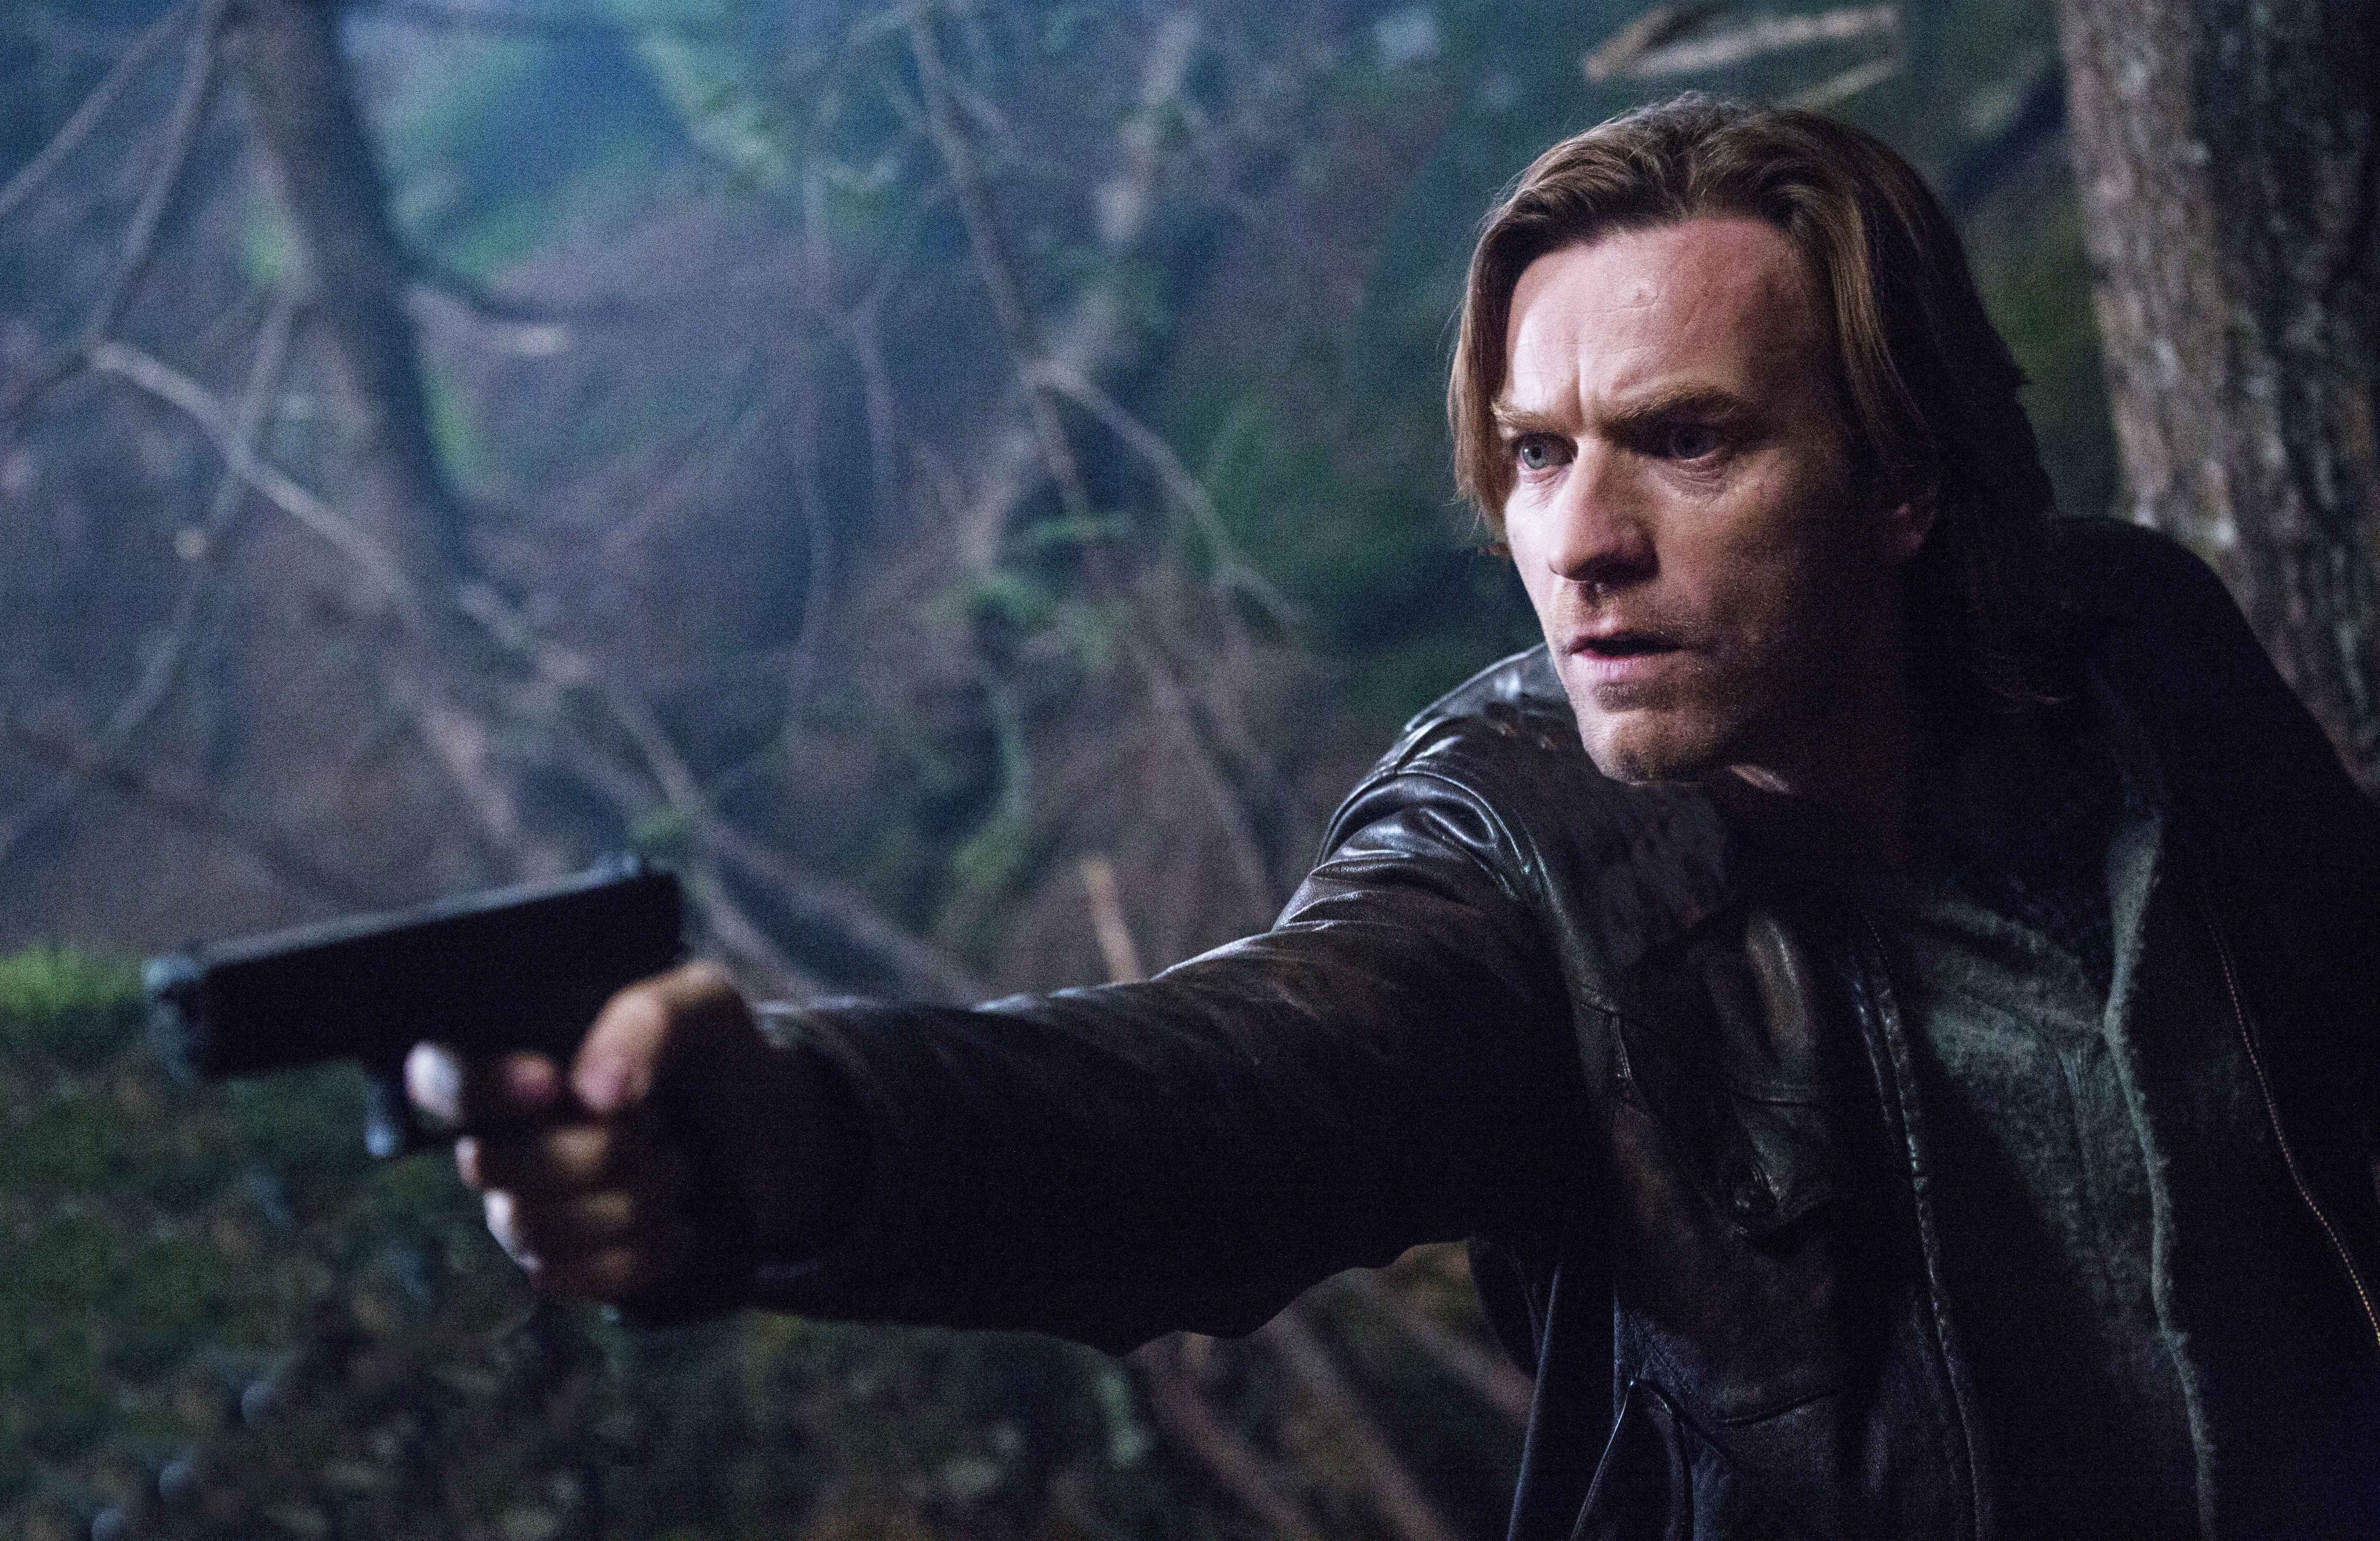 Ewan McGregor as Peregrine  Perry  Makepeace in Our Kind of Traitor, 2016